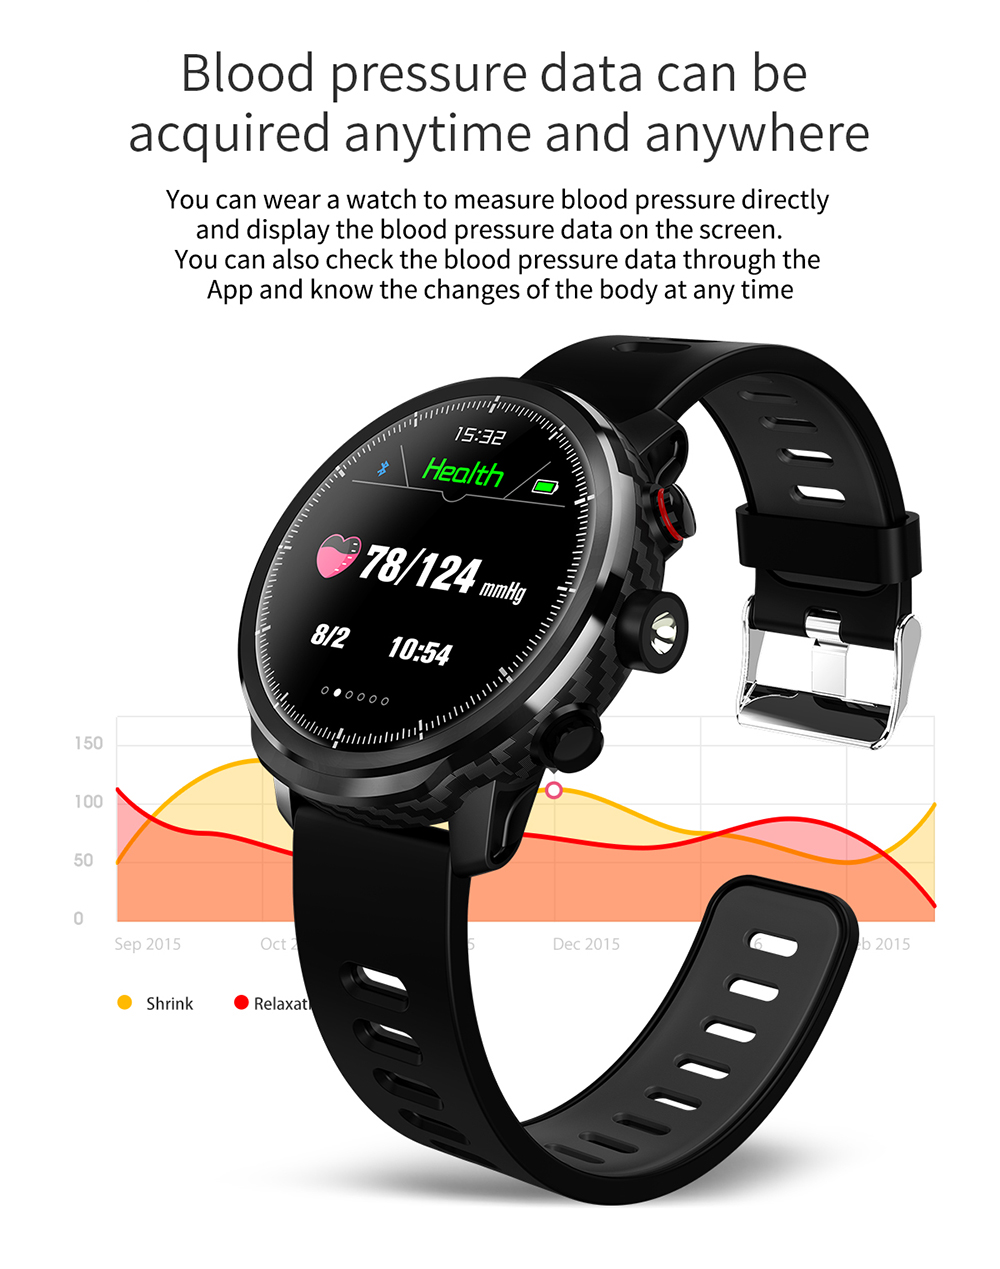 LEMFO L5 IP68 Waterproof Smart Watch For Men With Sports Mode Heart Rate Monitoring And Weather Forecast 9